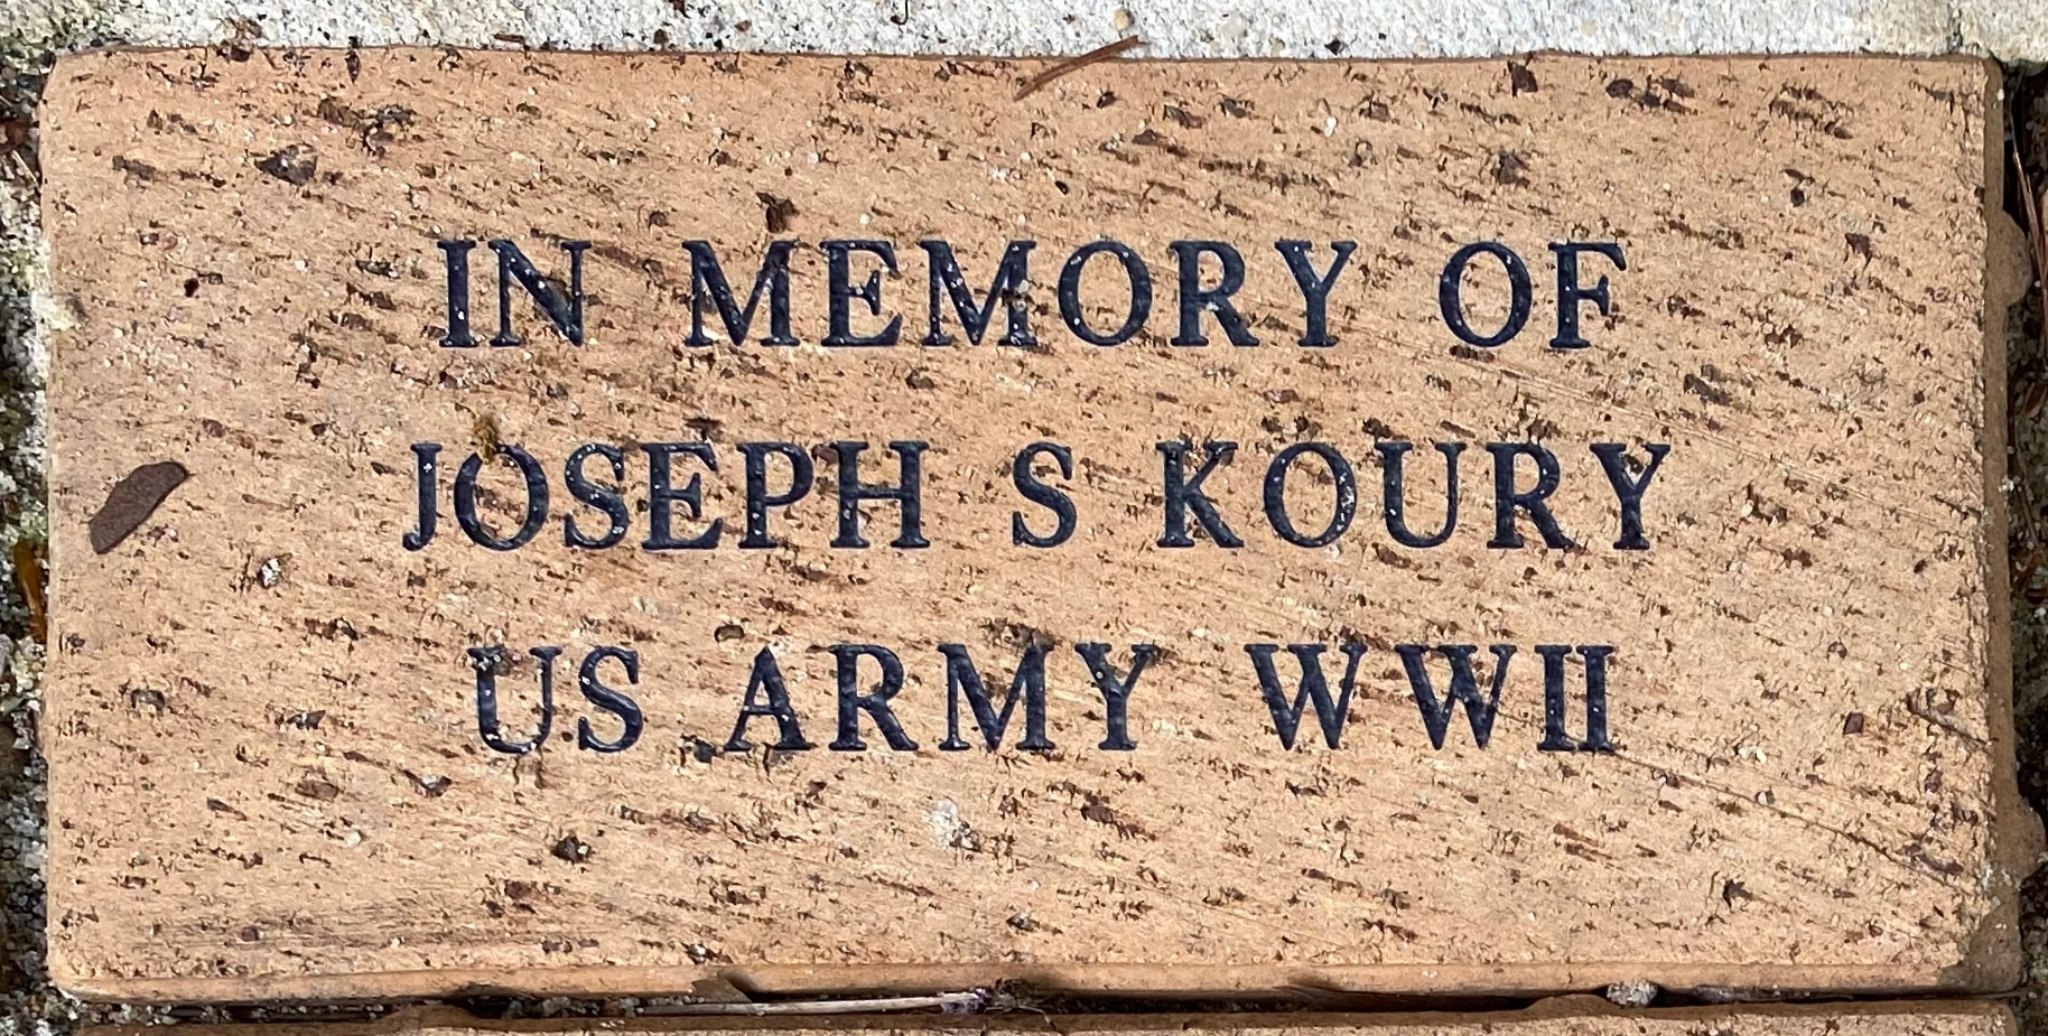 IN MEMORY OF  JOSEPH S KOURY US ARMY WWII